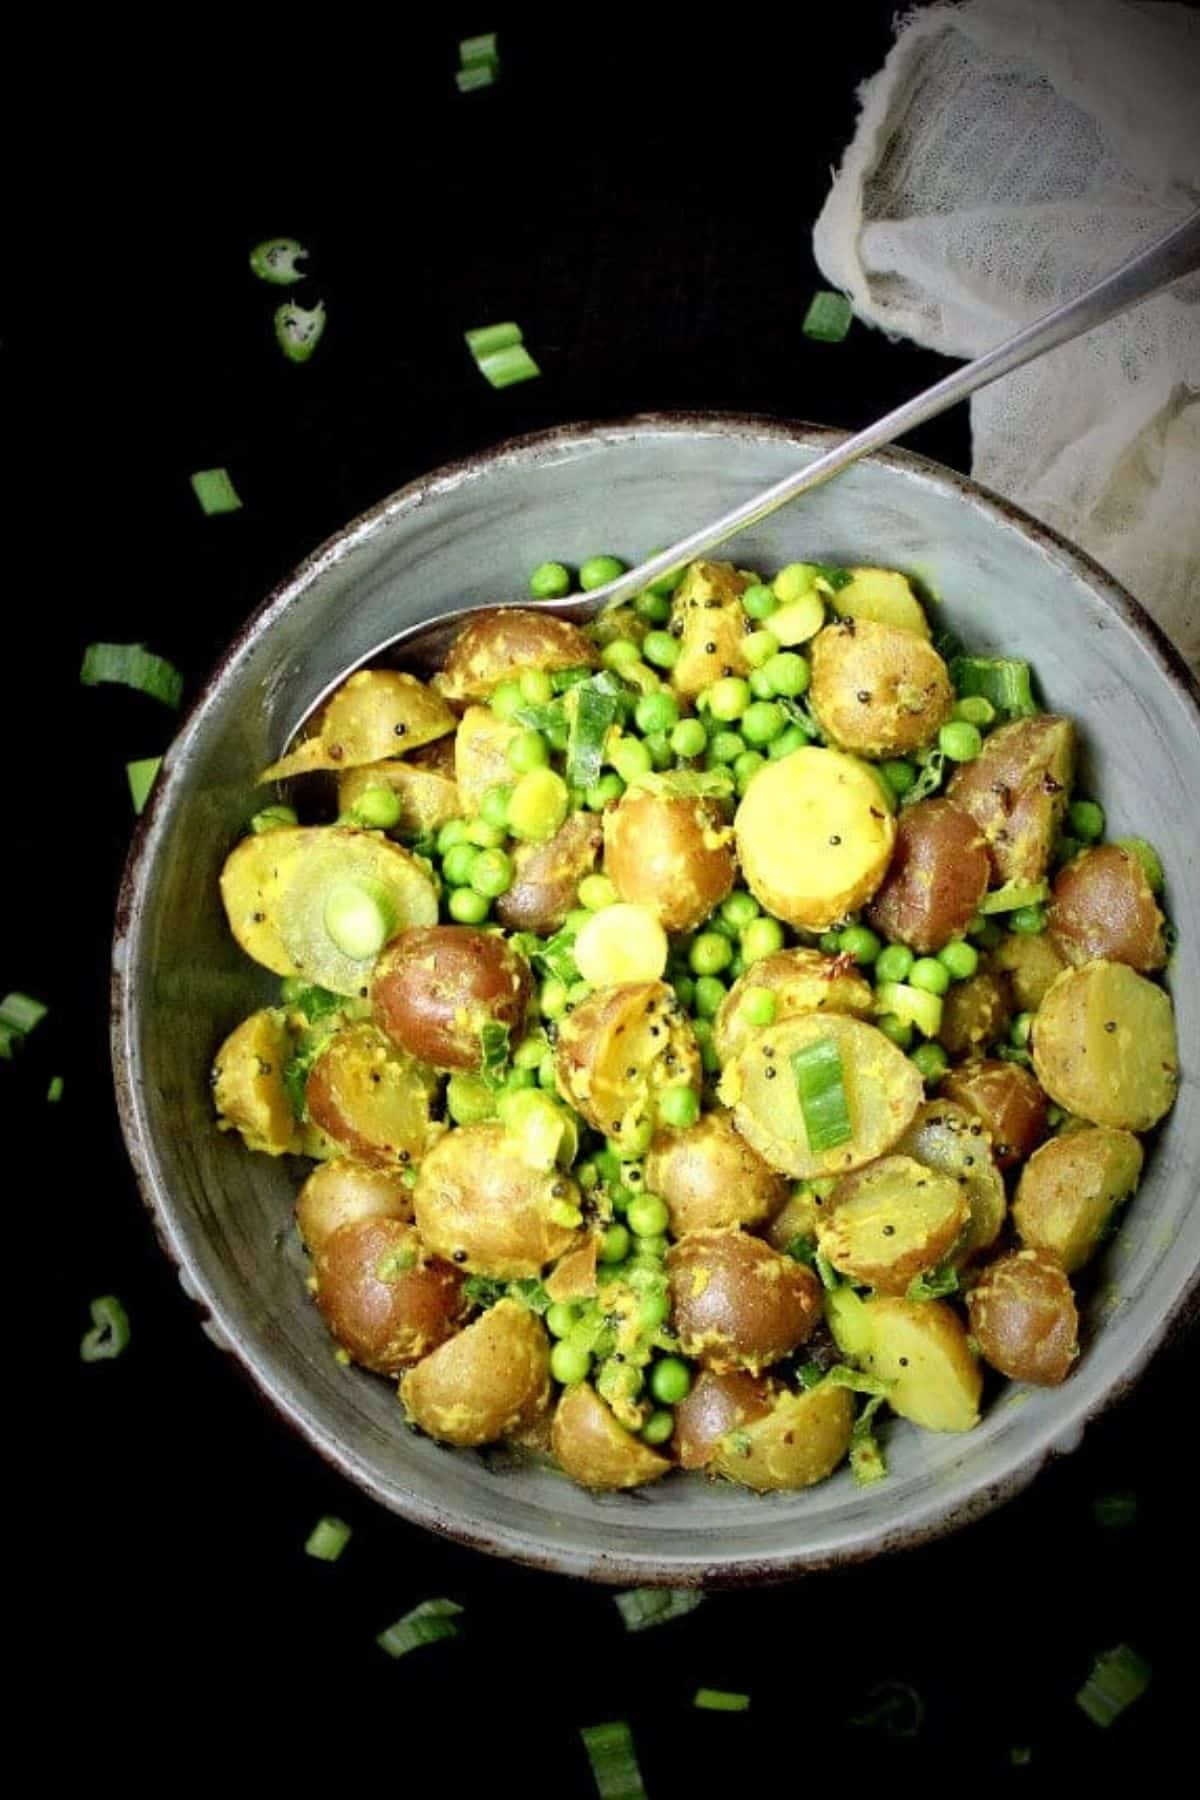 Overhead photo of creamy vegan potato salad made with Indian flavorings like coconut, ginger and turmeric in a glazed green and brown bowl with cheesecloth next to it.